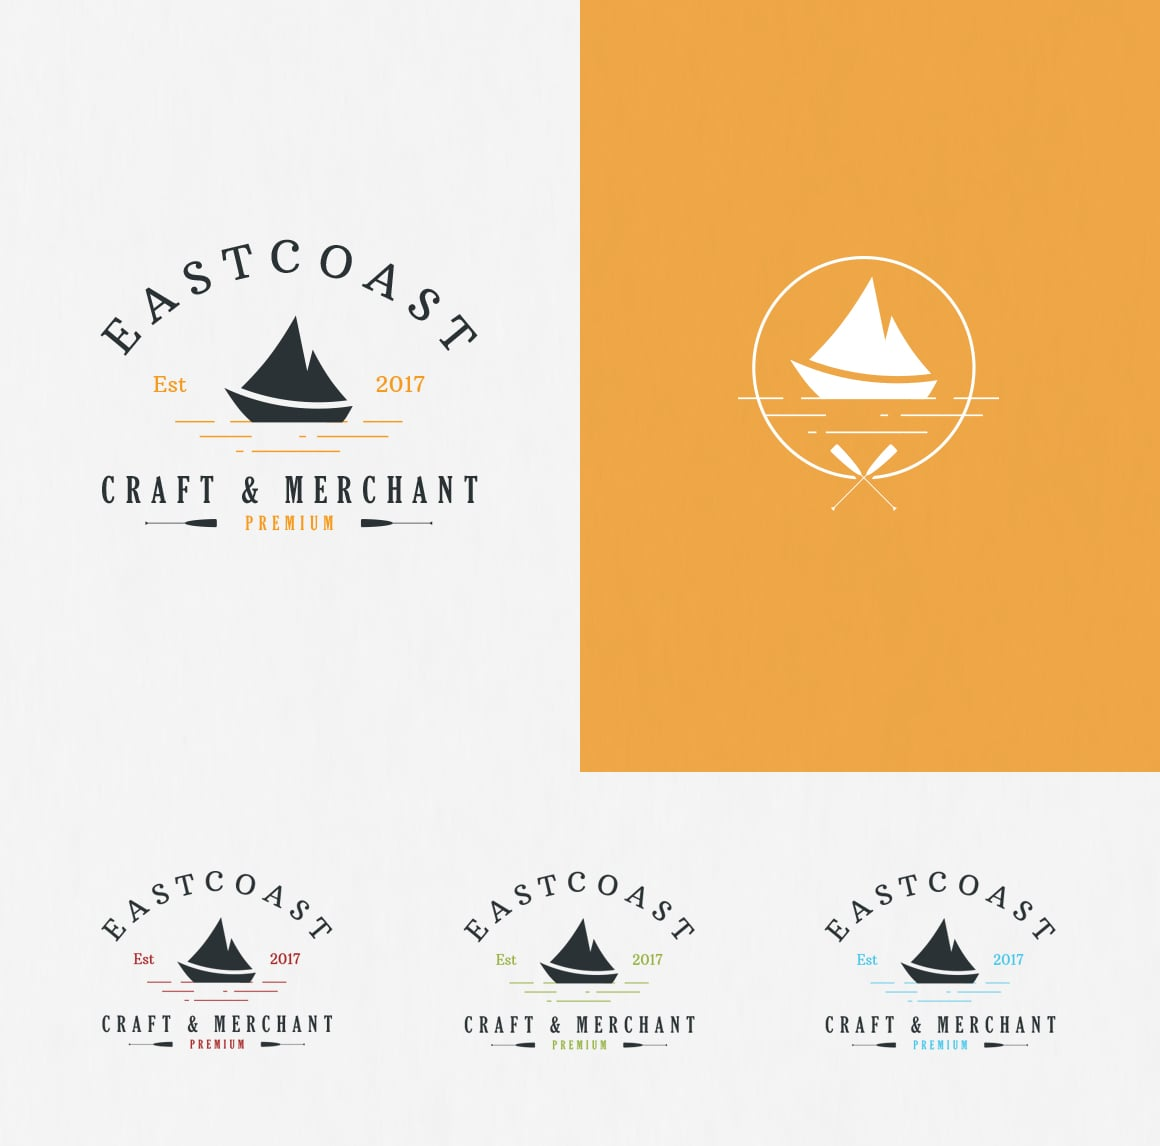 4 in 1 Logo Design Bundle - The sky is the limit - 3 1